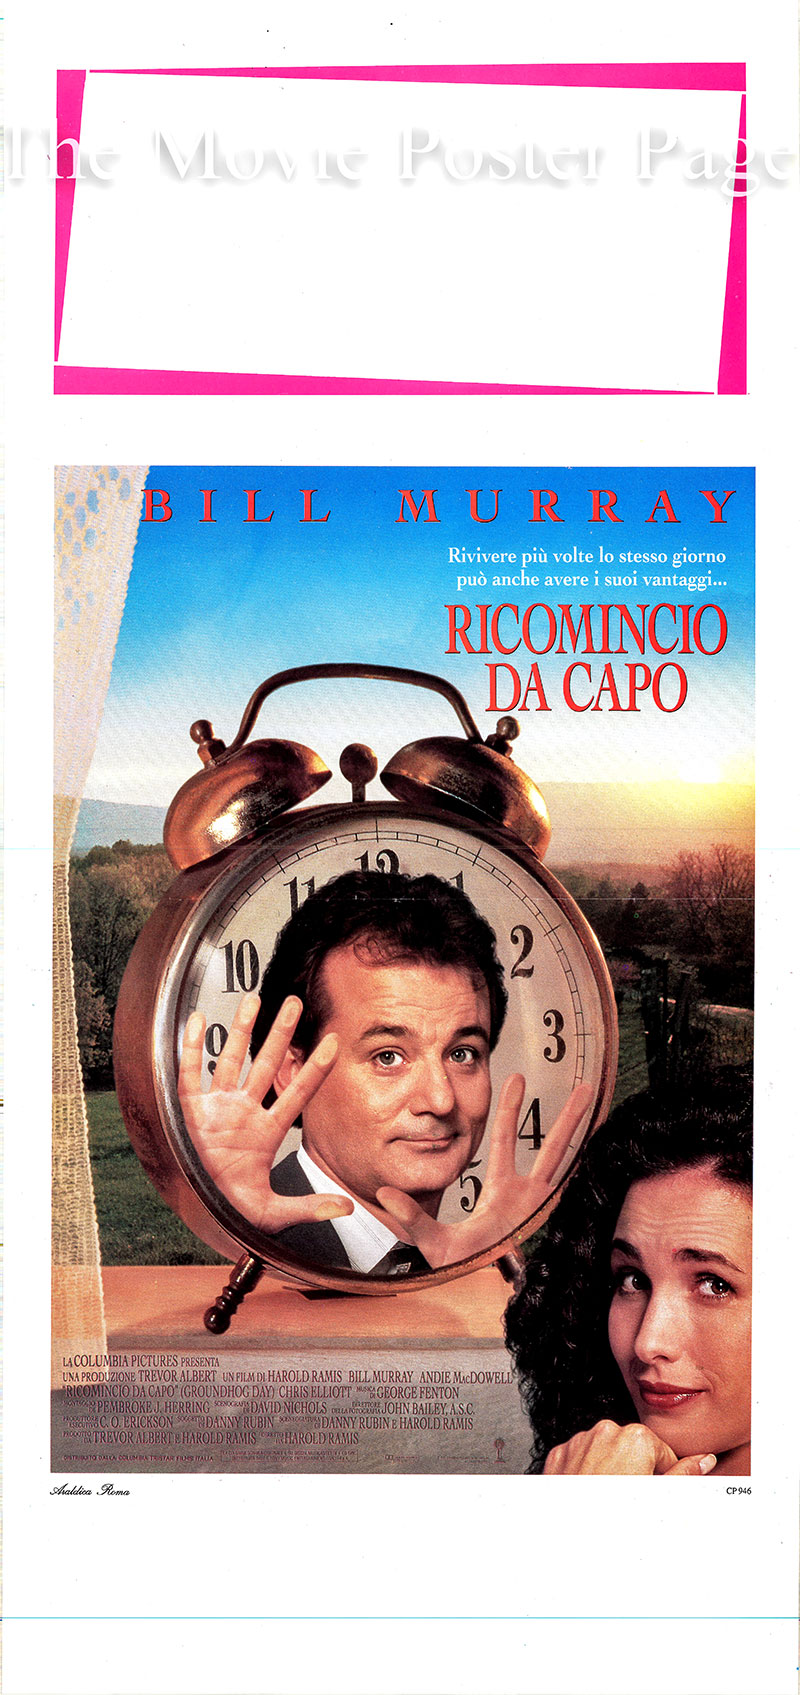 Pictured is an Italian locandina poster for the 1993 Harold Ramis film Groundhog Day starring Bill Murray as Phil.